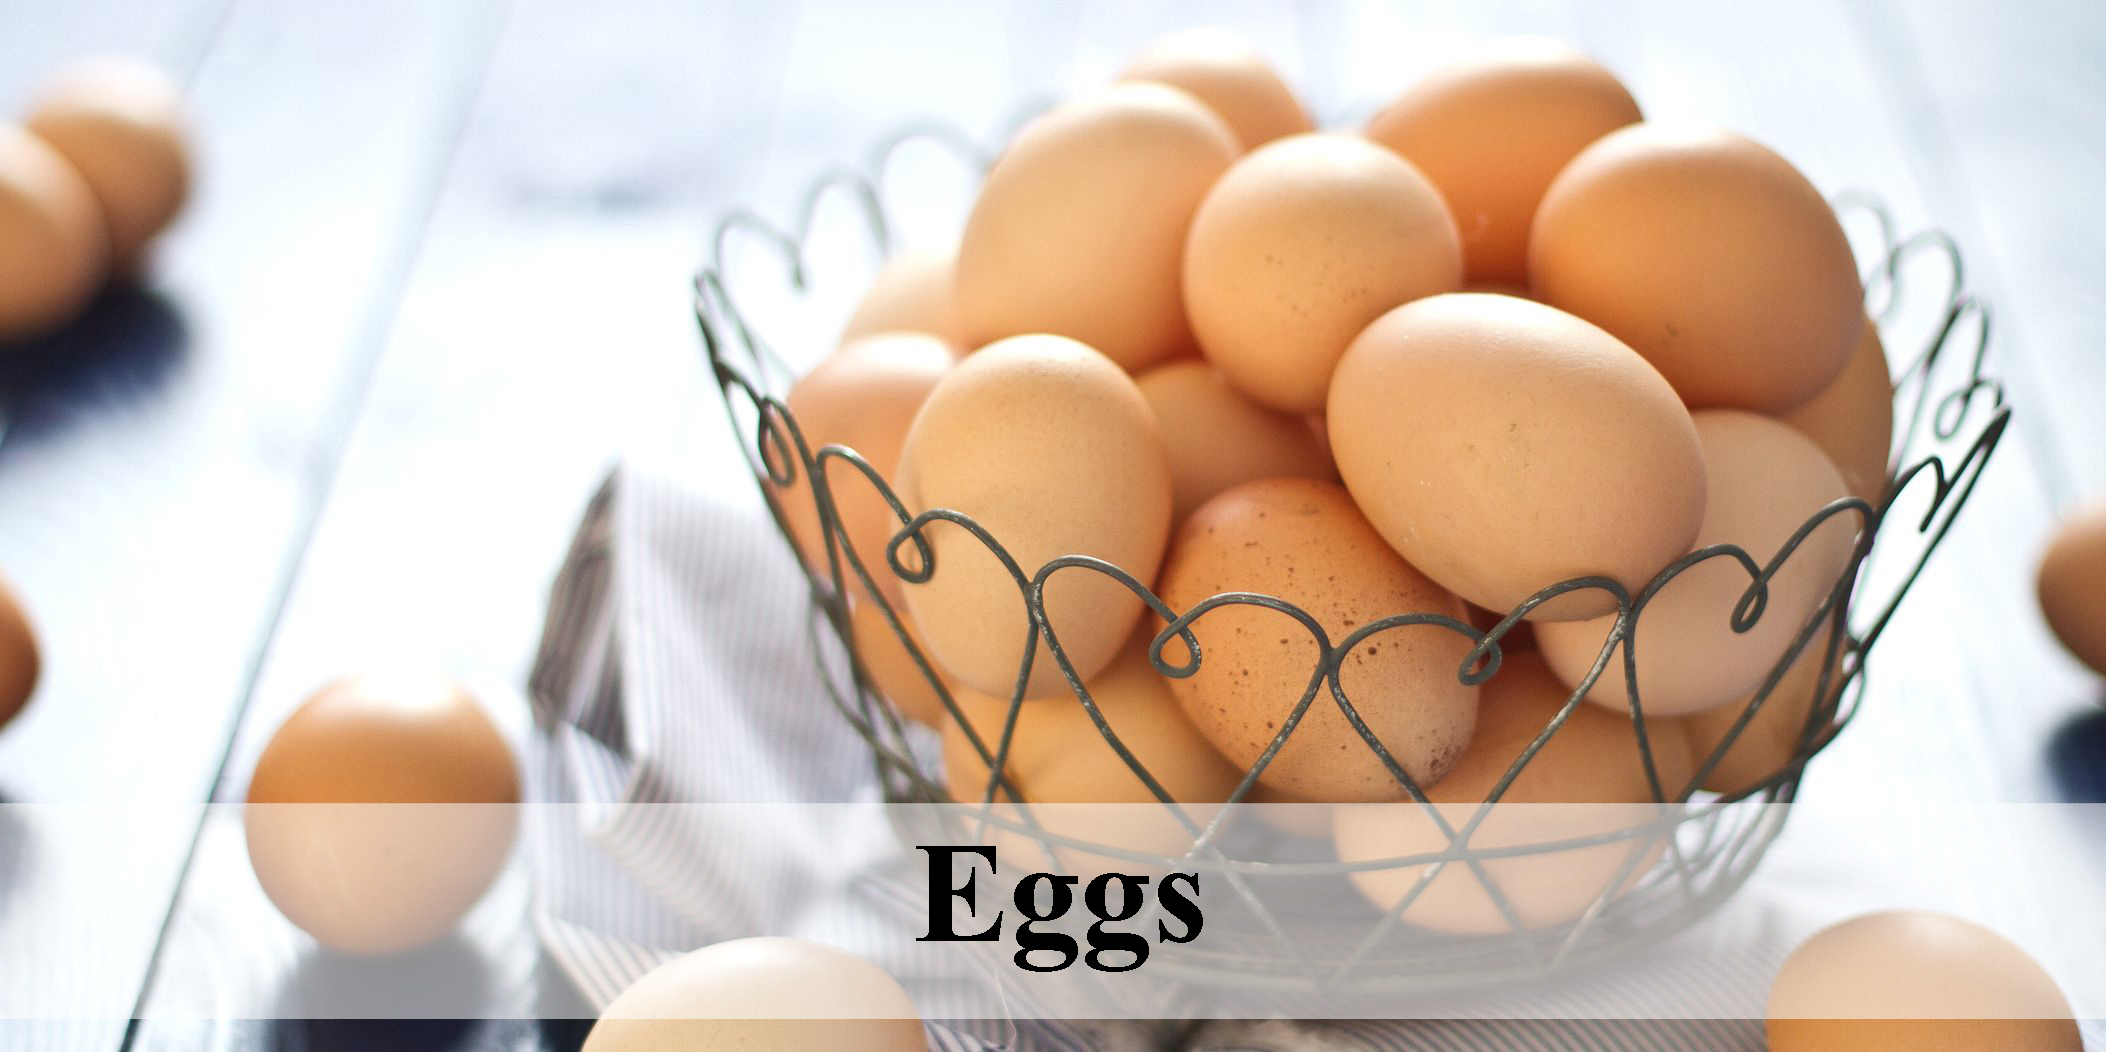 Eggs, Healthy food for day to day life healthy food Healthy food for day to day life Eggs